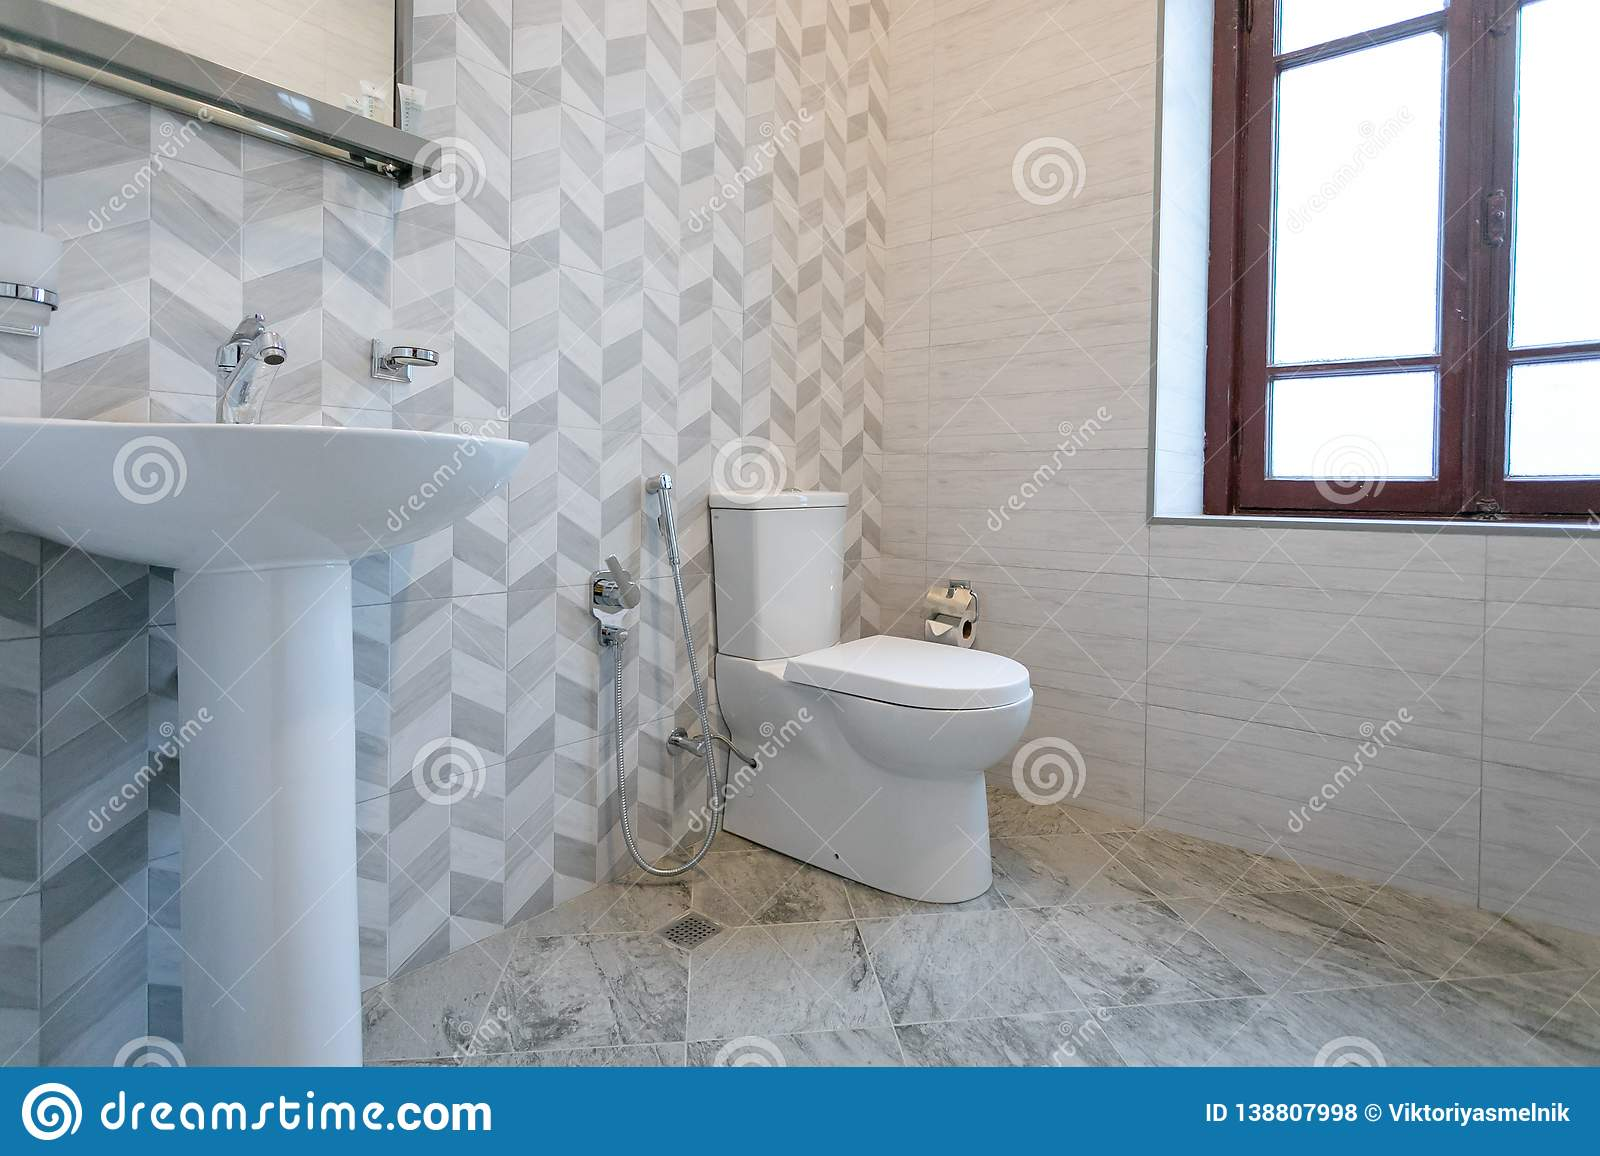 Bathroom With Tiles And Bright Colors Of Broom Shower With Frosted Doors Mirror Above The Sink Hanging A Towel Over The Toilet O Stock Photo Image Of Gray Beautiful 138807998